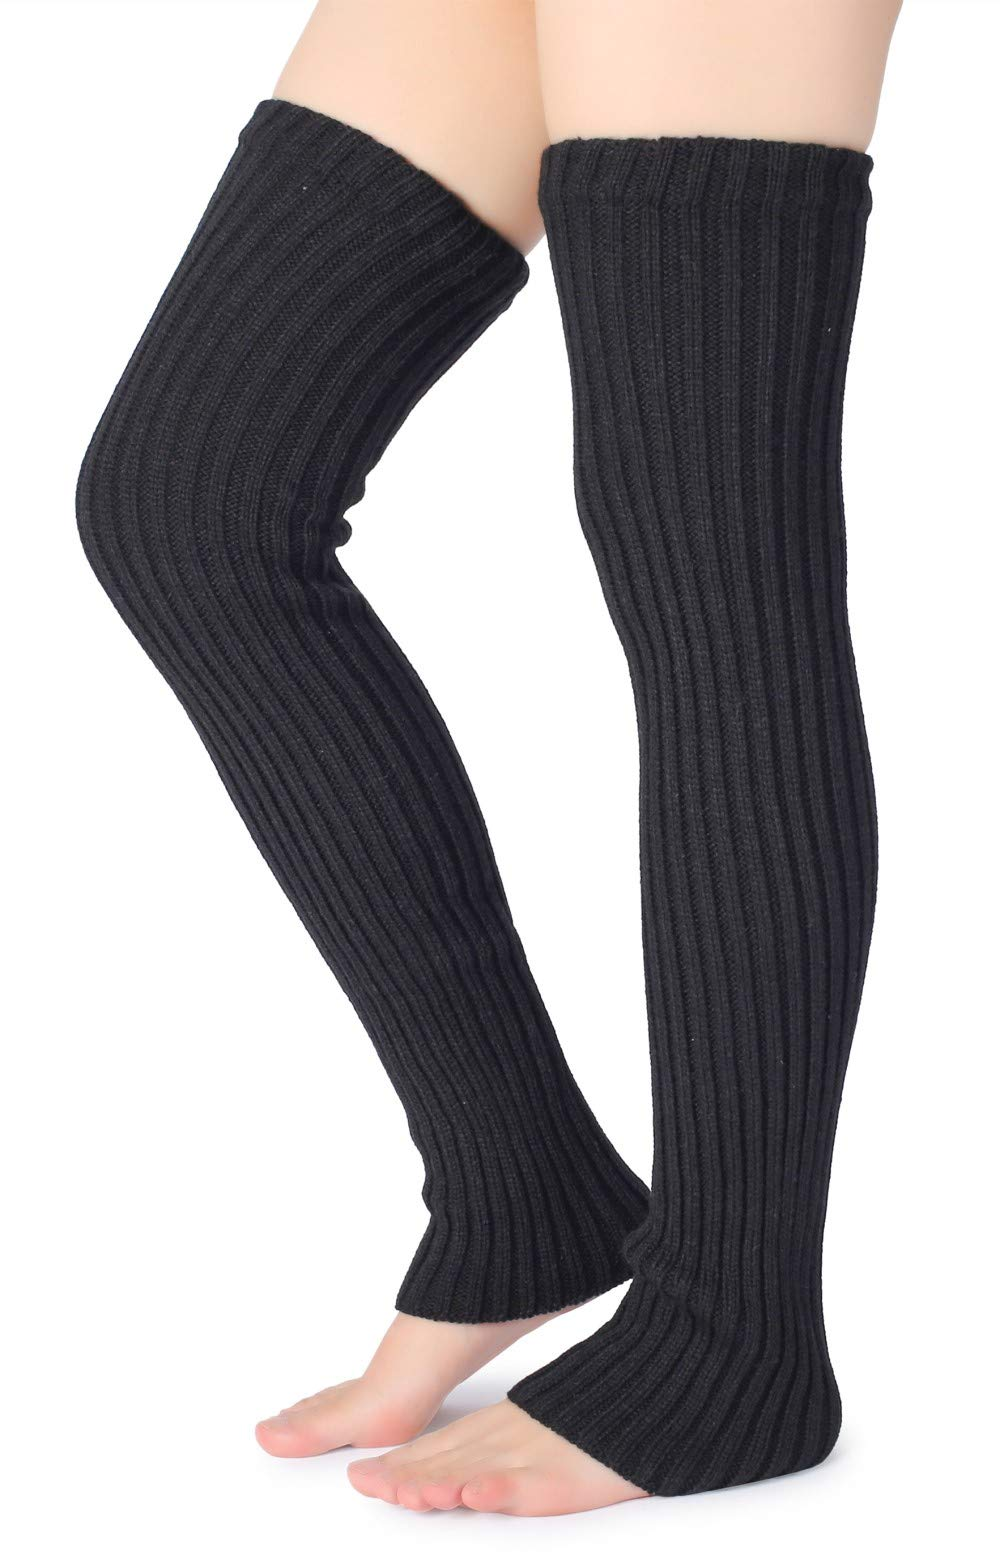 Pareberry Women's Winter Over Knee High Footless Socks Knit Warm Long Leg Warmers (A-Black) by Pareberry